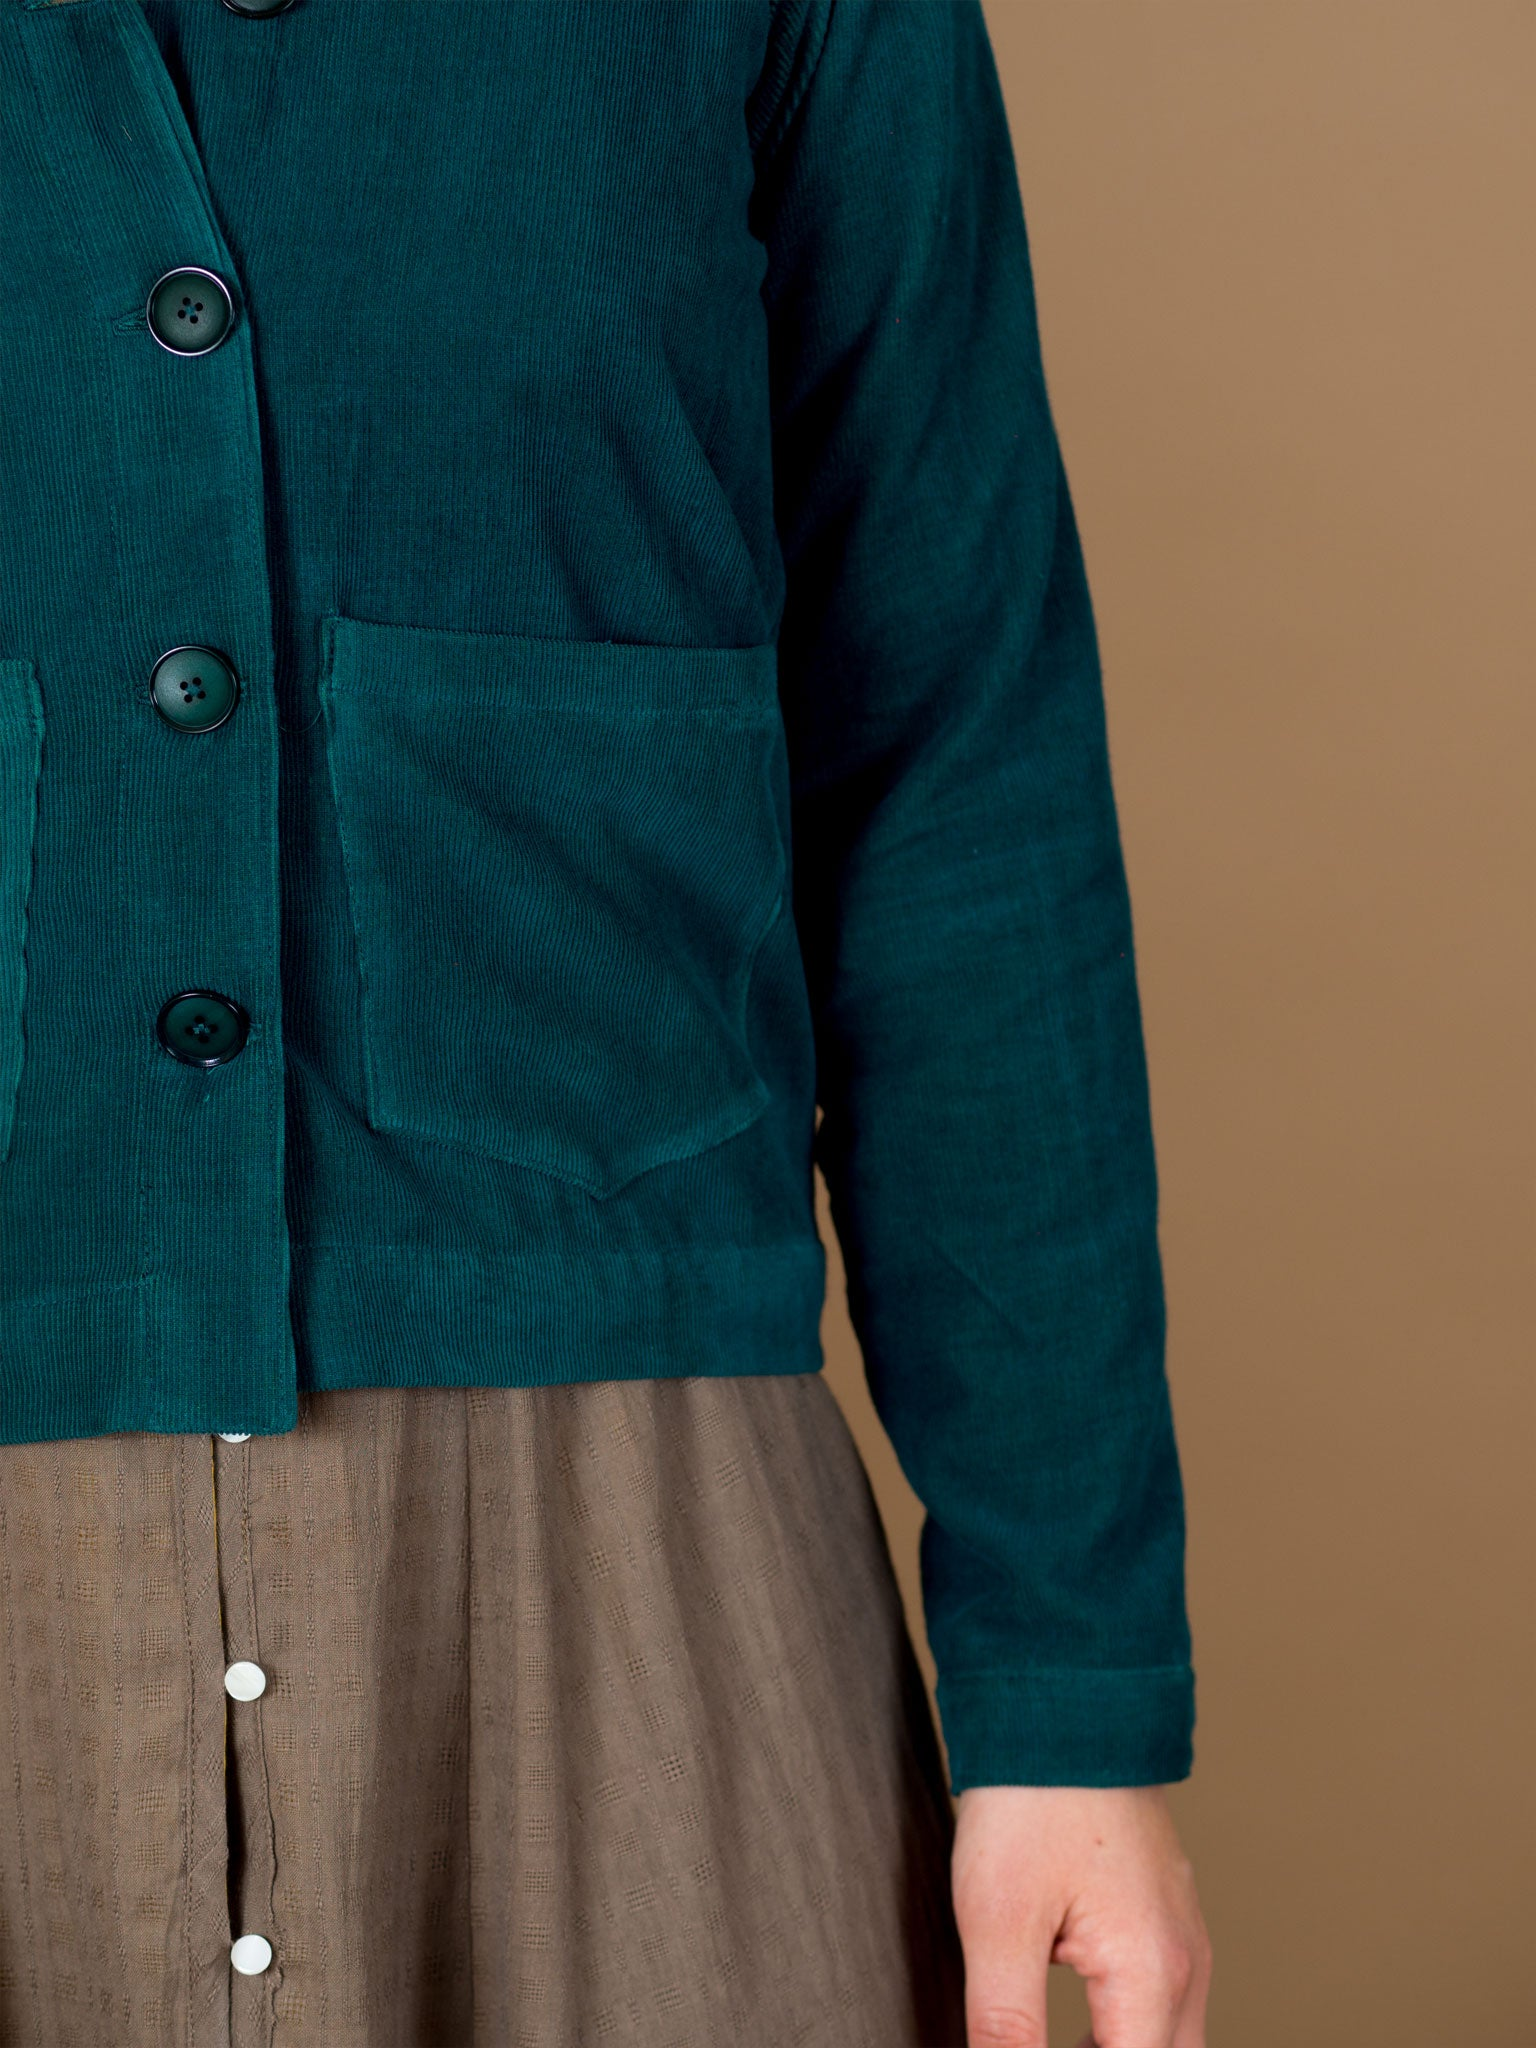 Boxwood Jacket in Evergreen Corduroy